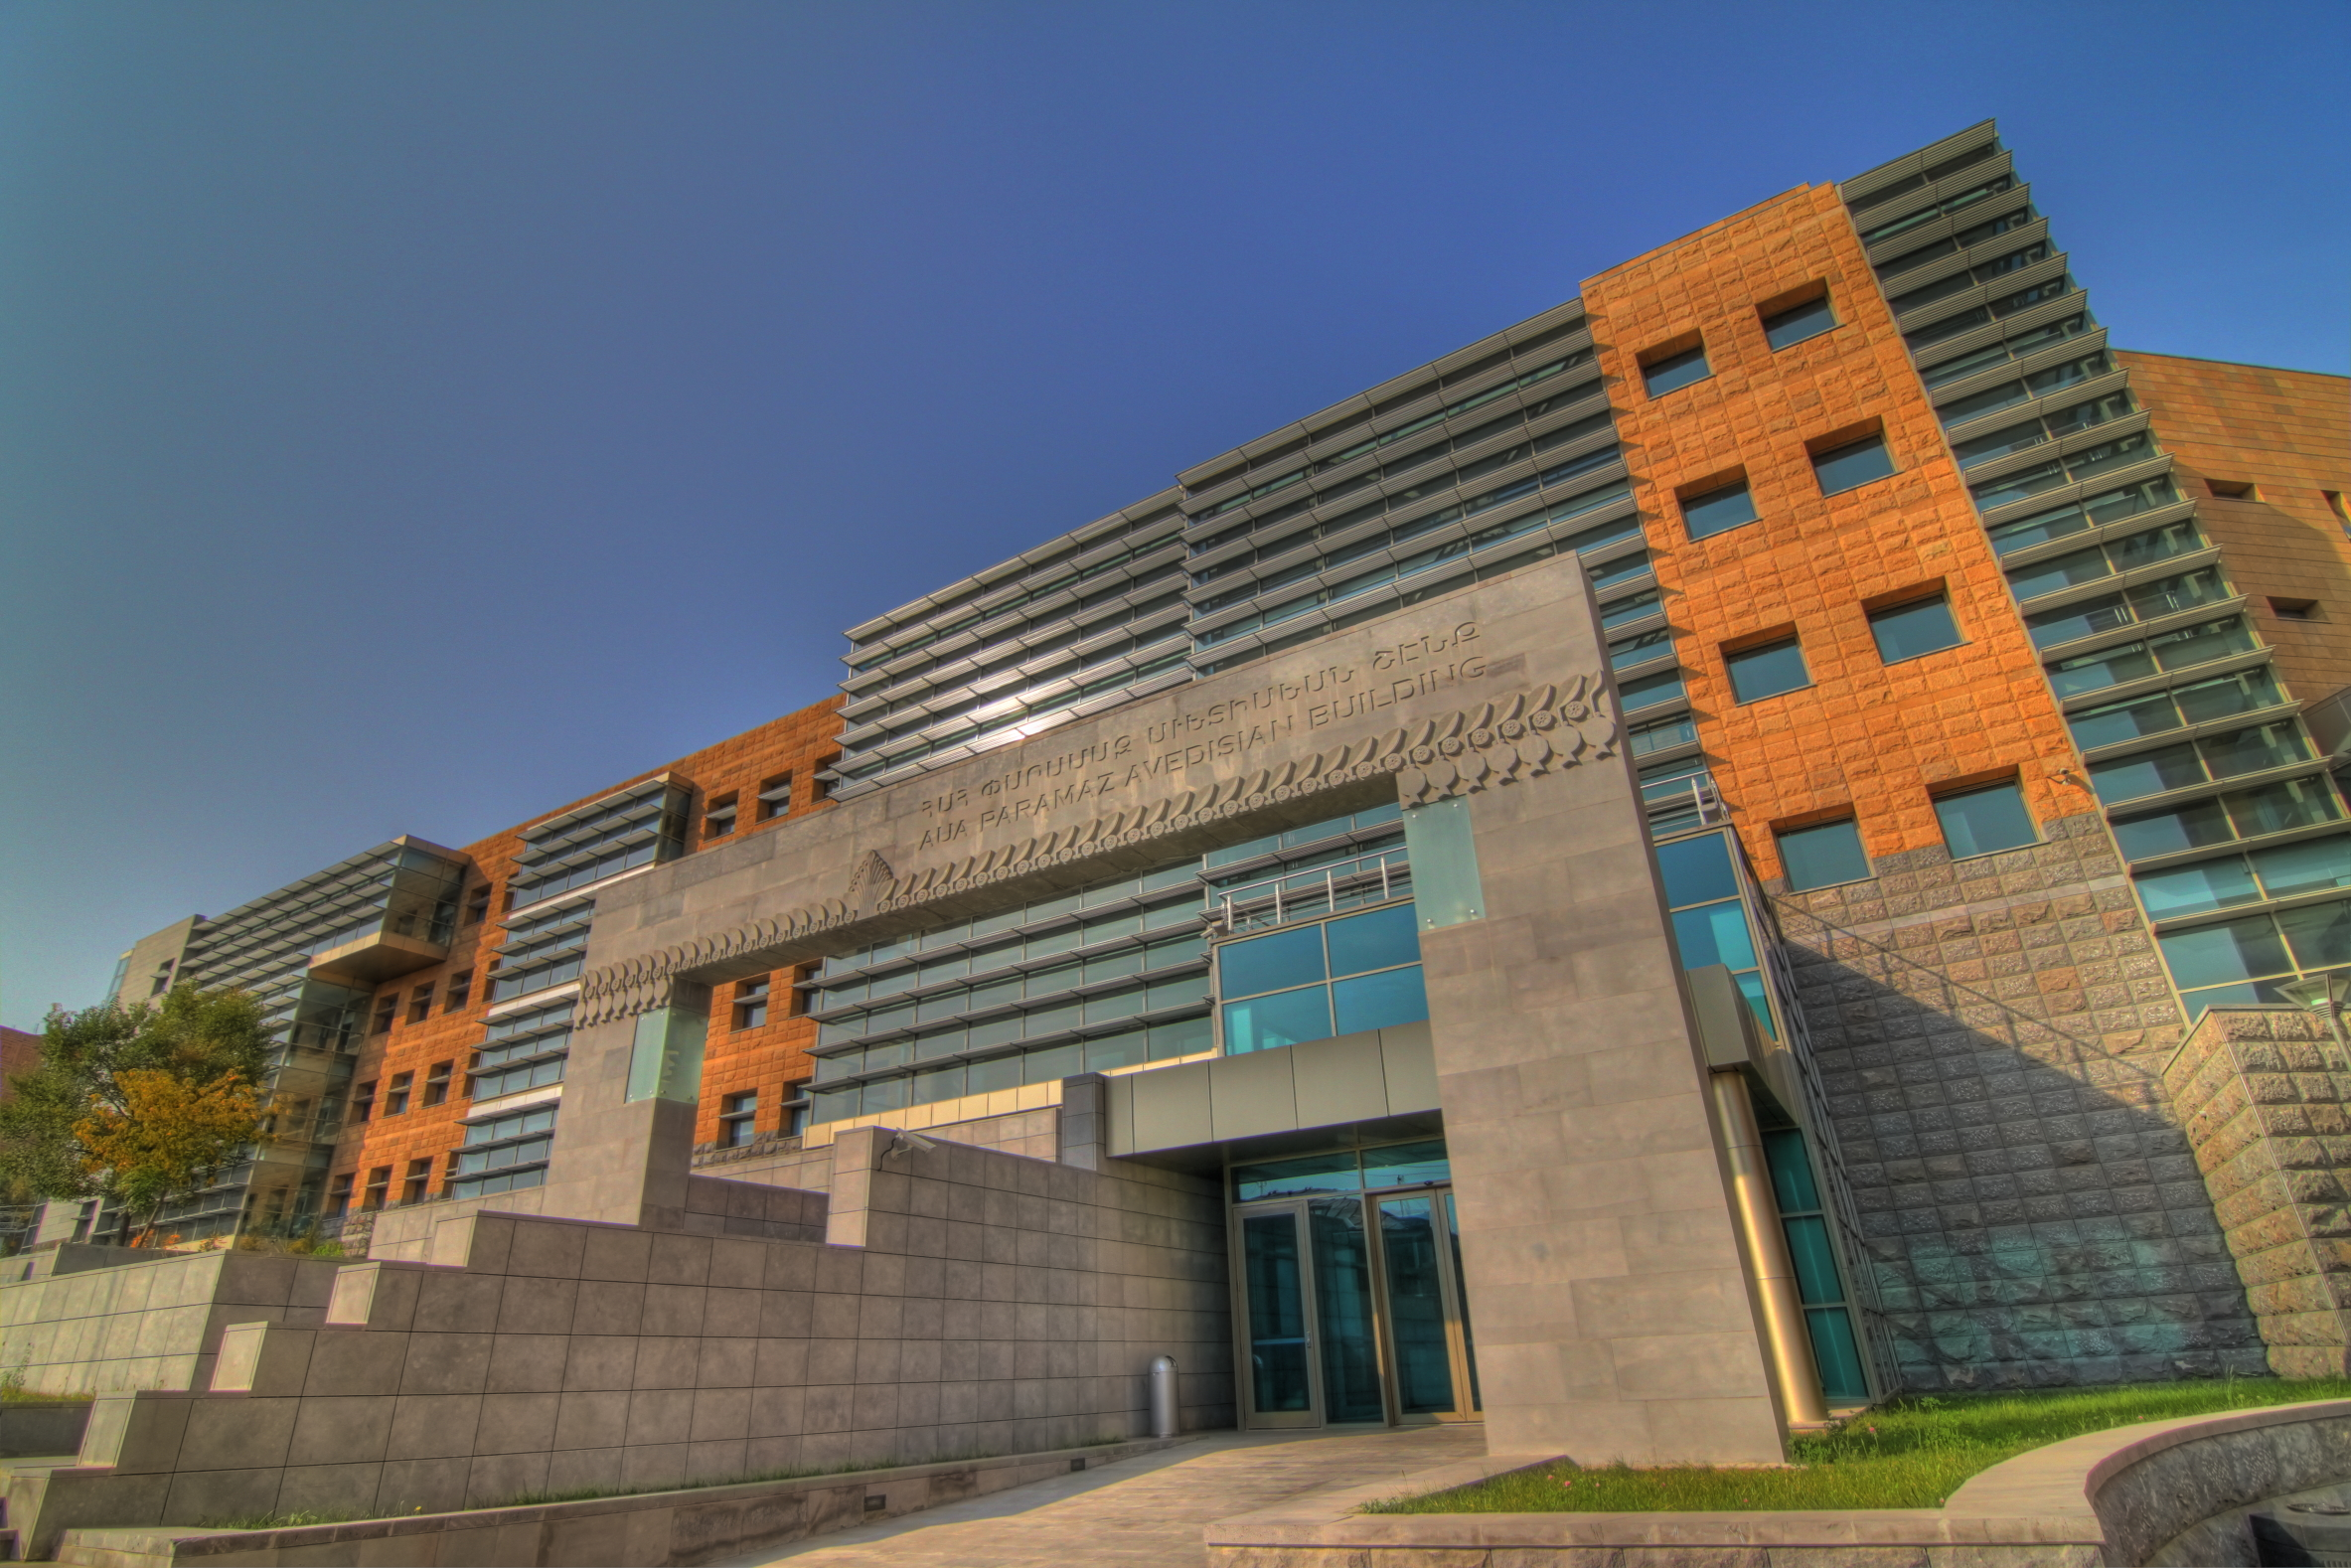 American_University_of_Armenia_-_Avedisian_Building_-_HDR.JPG